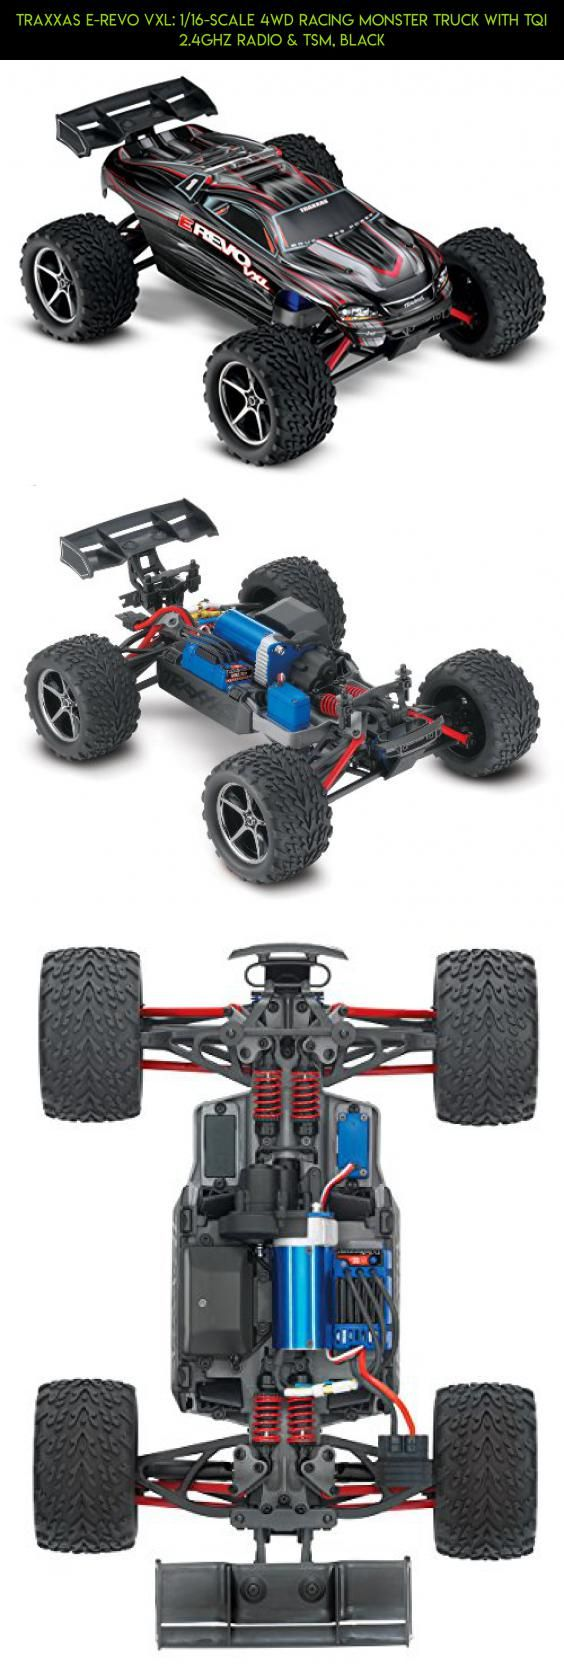 Traxxas E-Revo VXL: 1/16-Scale 4WD Racing Monster Truck with TQi 2.4GHz Radio & TSM, Black #traxxas #oil #tech #plans #parts #gadgets #products #shopping #camera #racing #kit #fpv #technology #drone